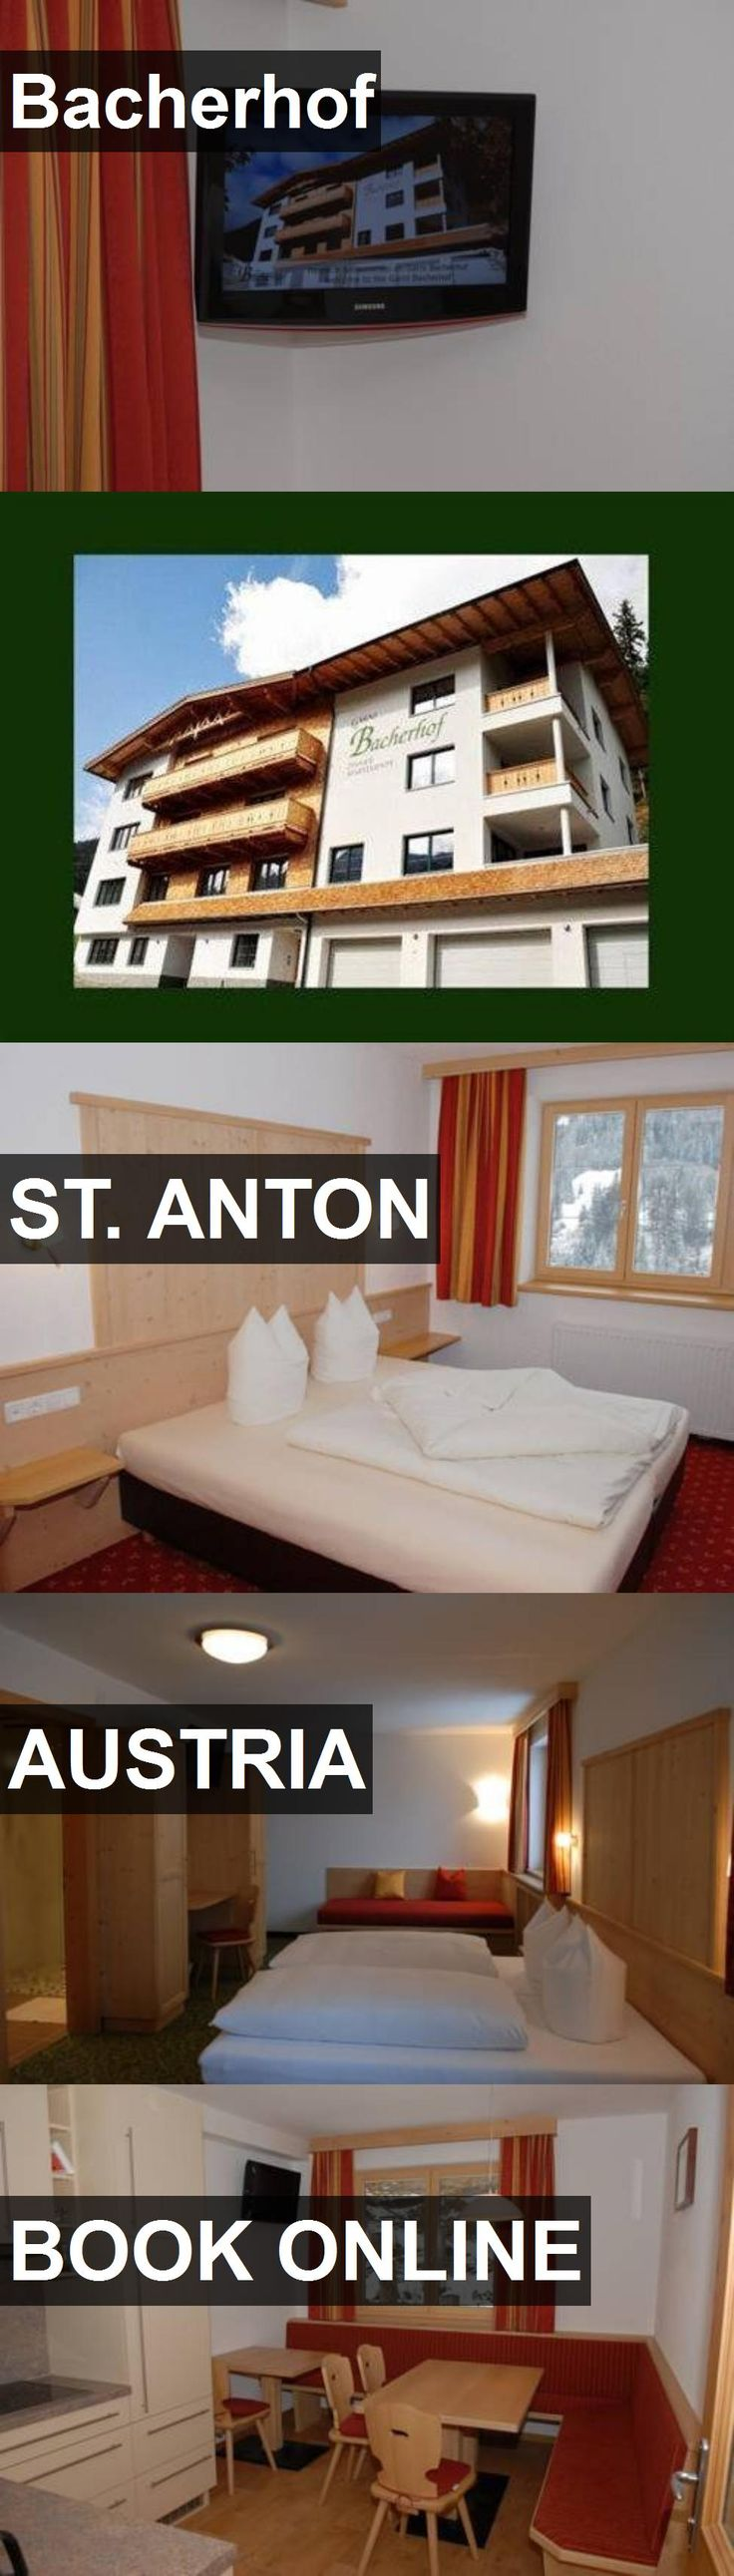 Hotel Bacherhof in St. Anton, Austria. For more information, photos, reviews and best prices please follow the link. #Austria #St.Anton #travel #vacation #hotel